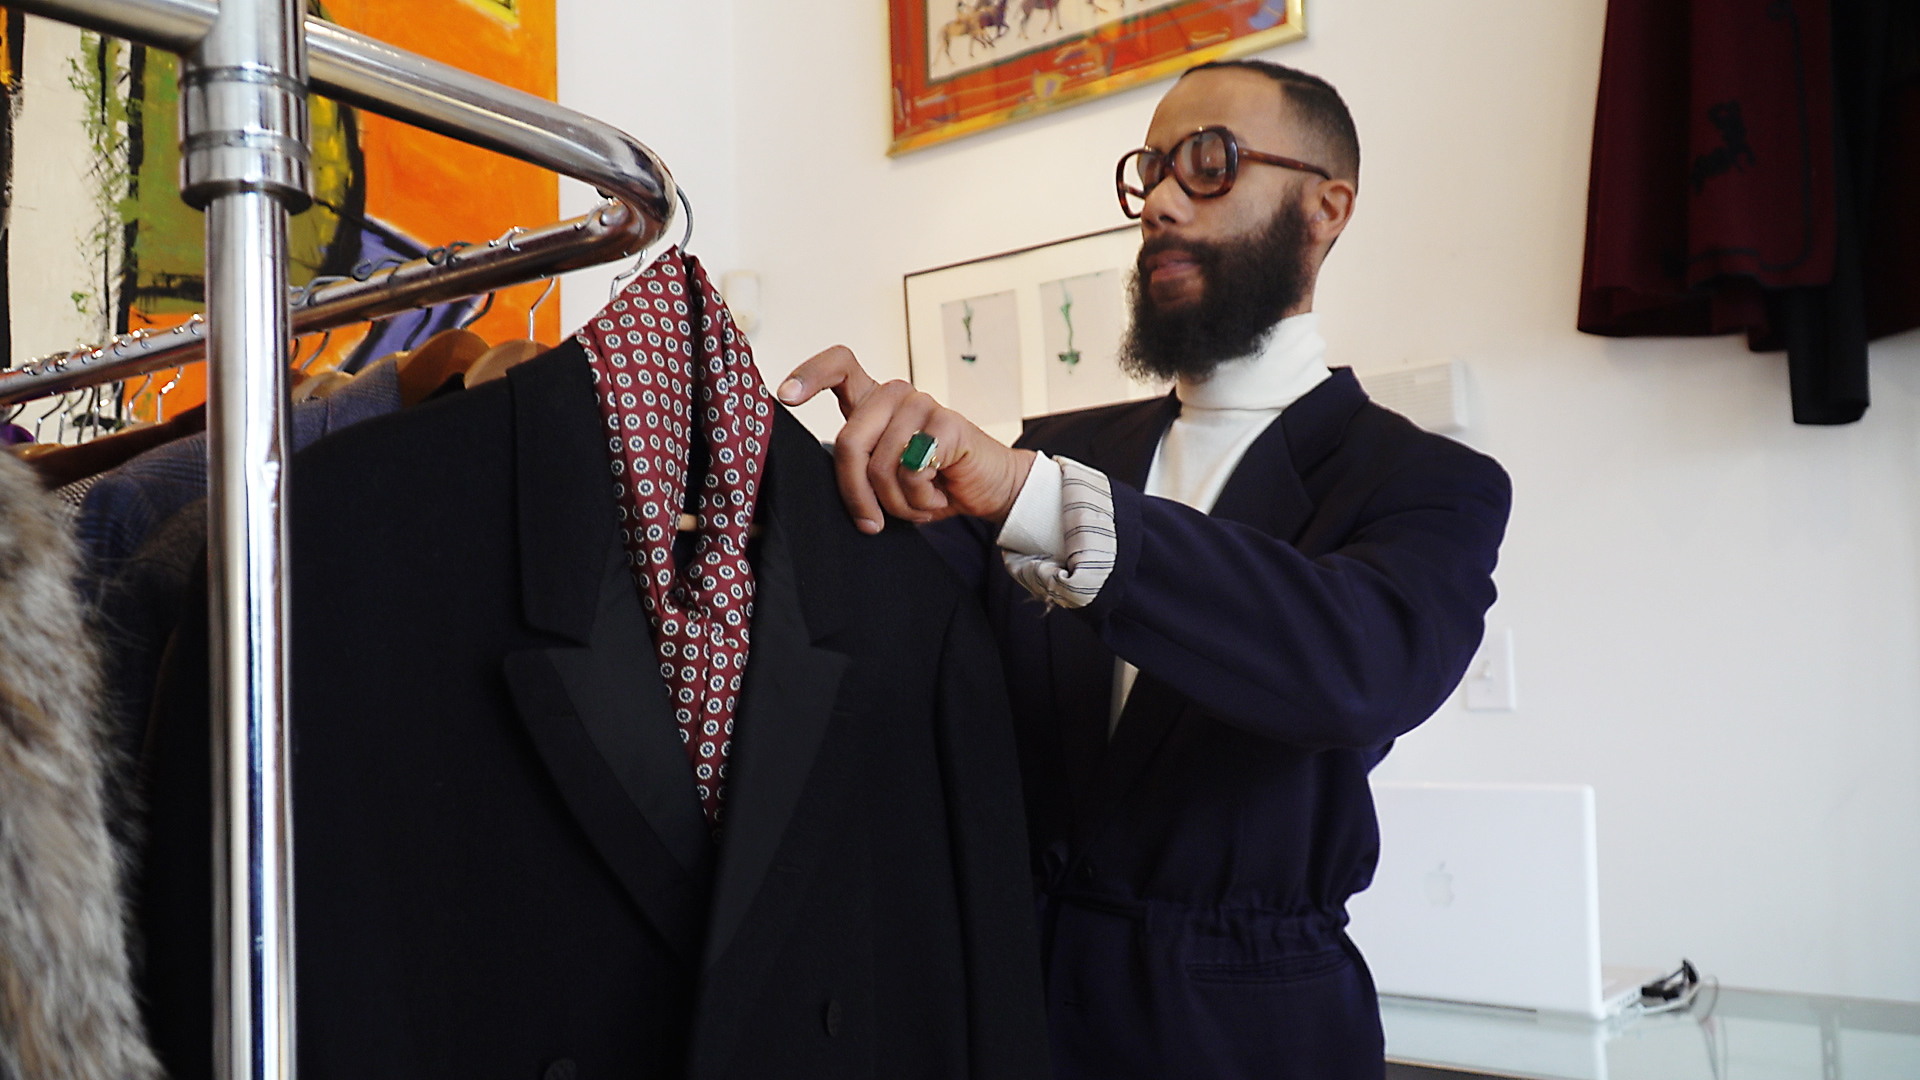 Erik Honesty curates and styles clothes from as early as the 1920s at his vintage menswear store in Germantown.